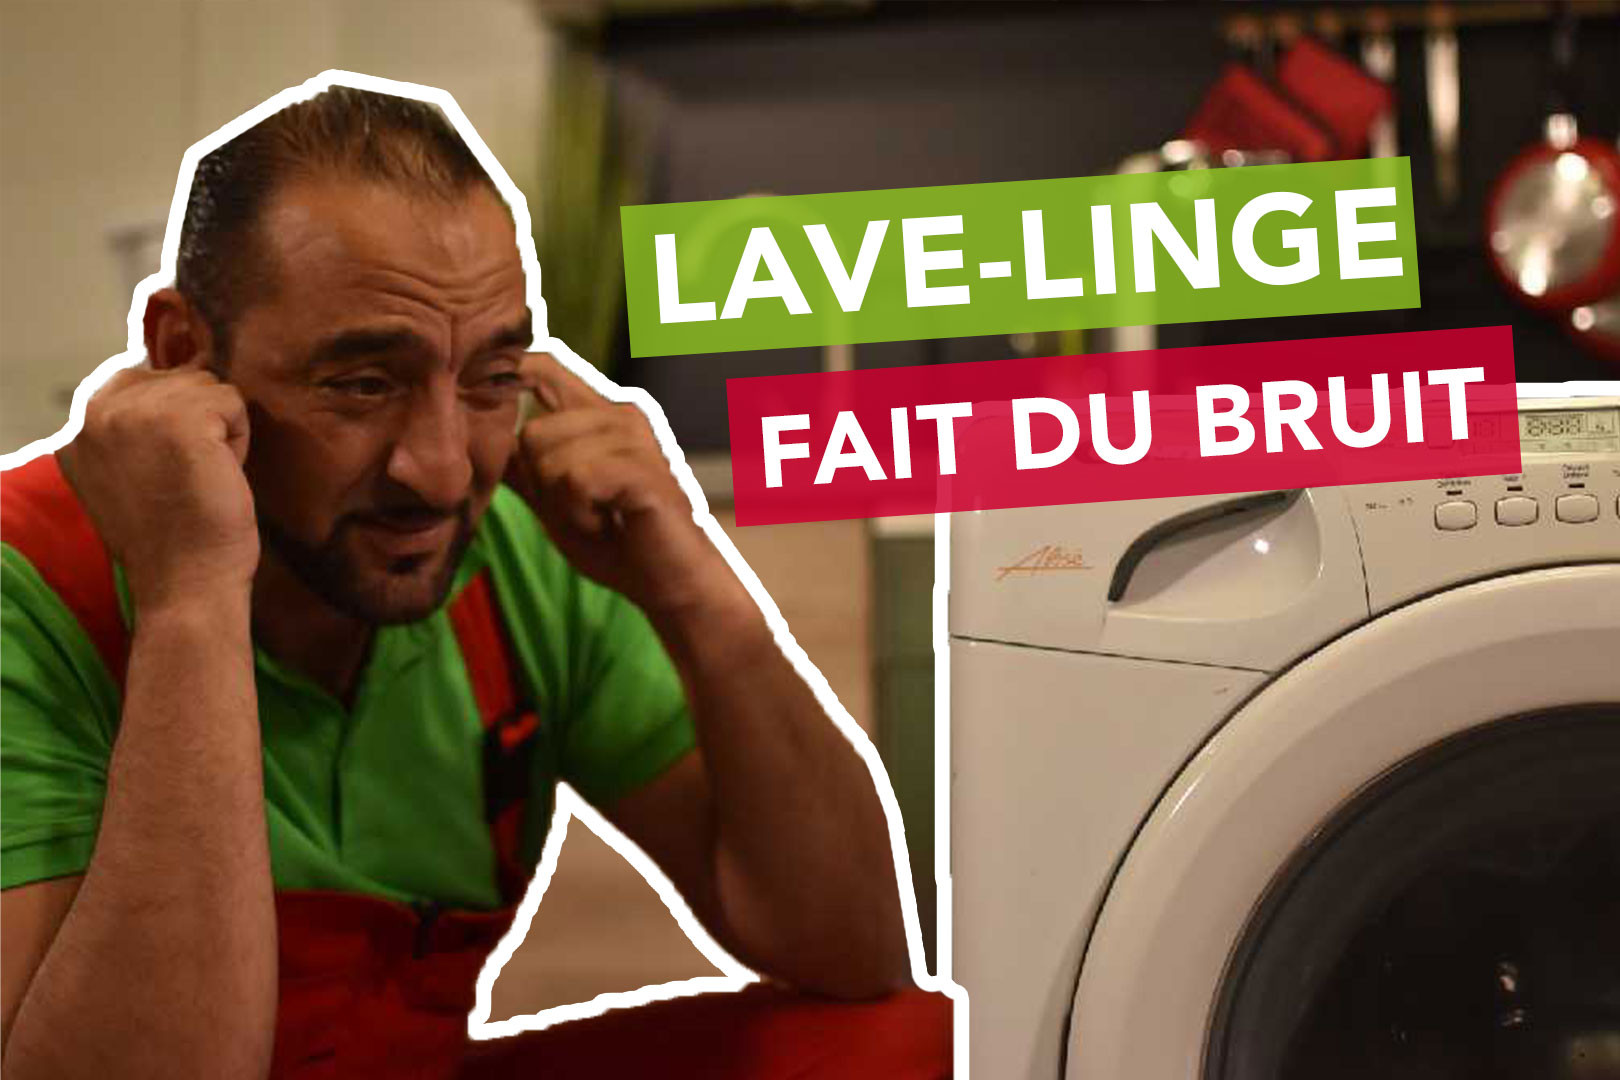 How To Remove Aqua Inlet Filter On Bosch Washing Machine Serie 4 Varioperfect Youtube